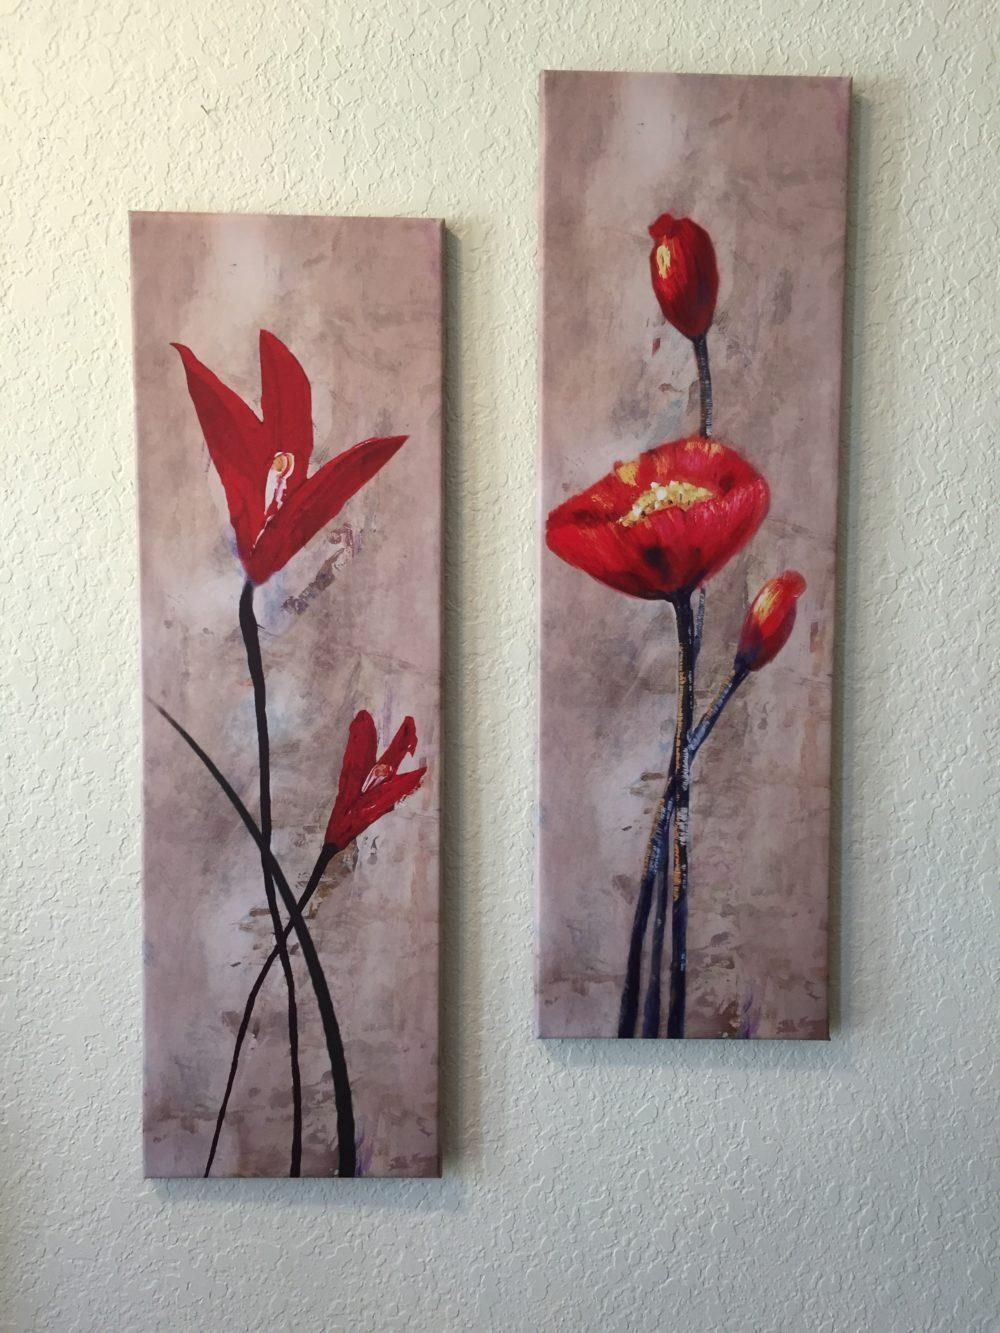 Flowers Composition Vertical Painting 2 Piece Wall Art Regarding 4 Piece Wall Art (Image 10 of 19)